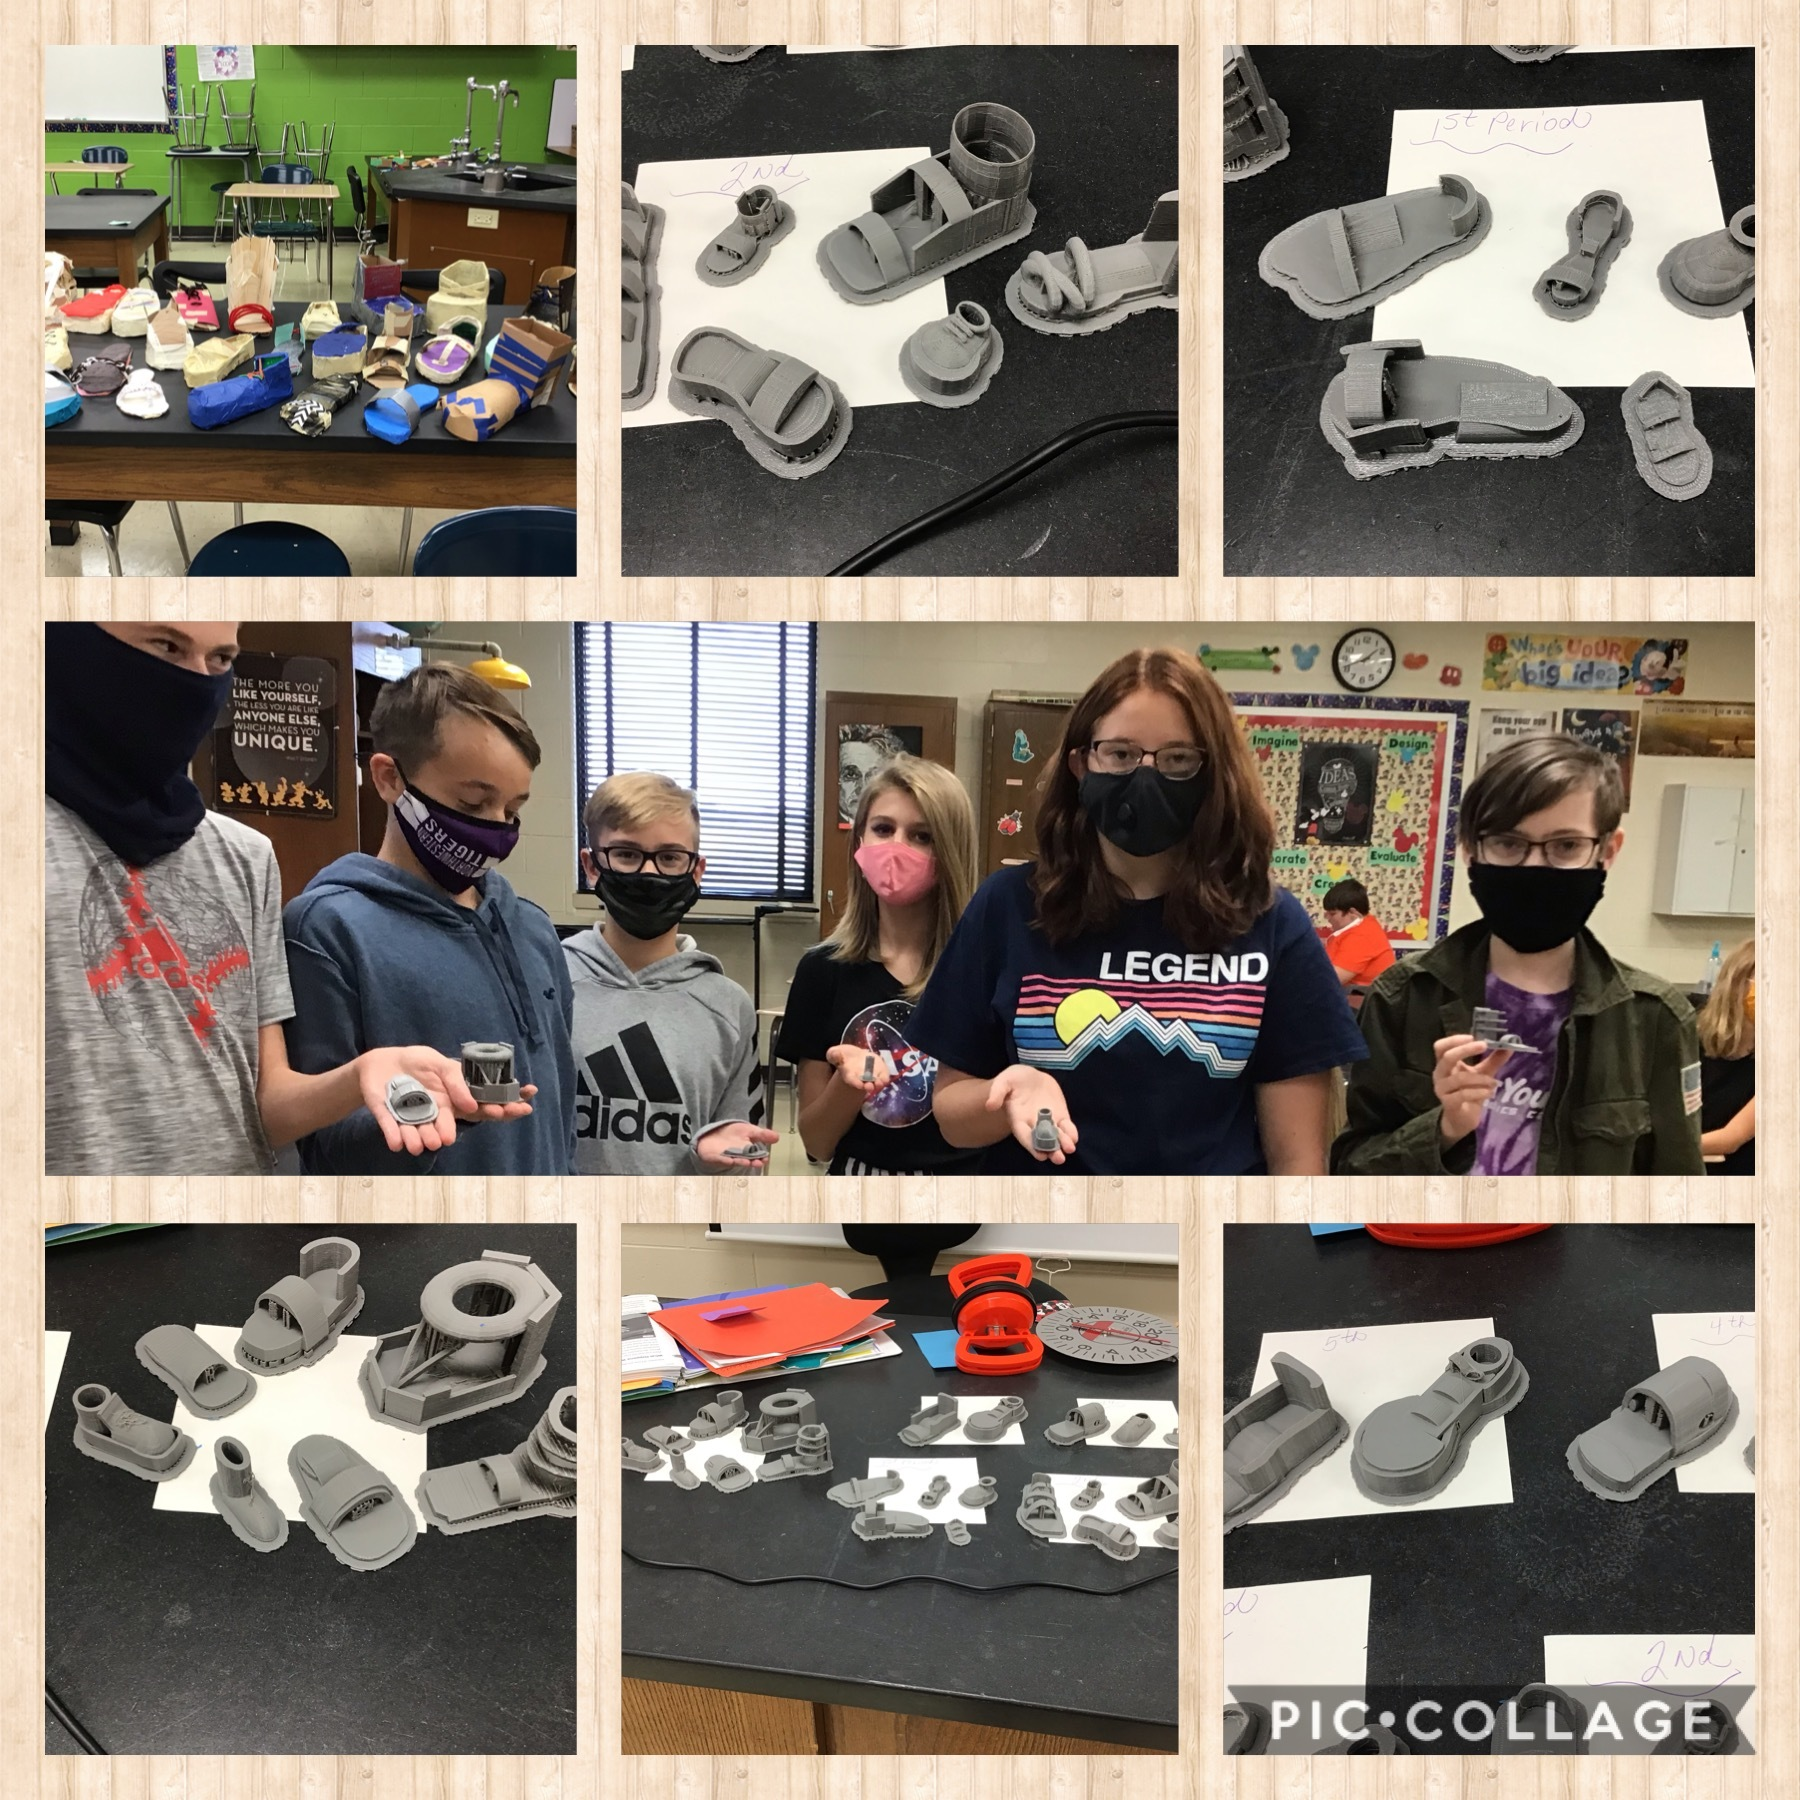 Mrs. Sinnamon's Class studied, designed, and built a prototype  based on what they learned in a biomedical engineering unit.